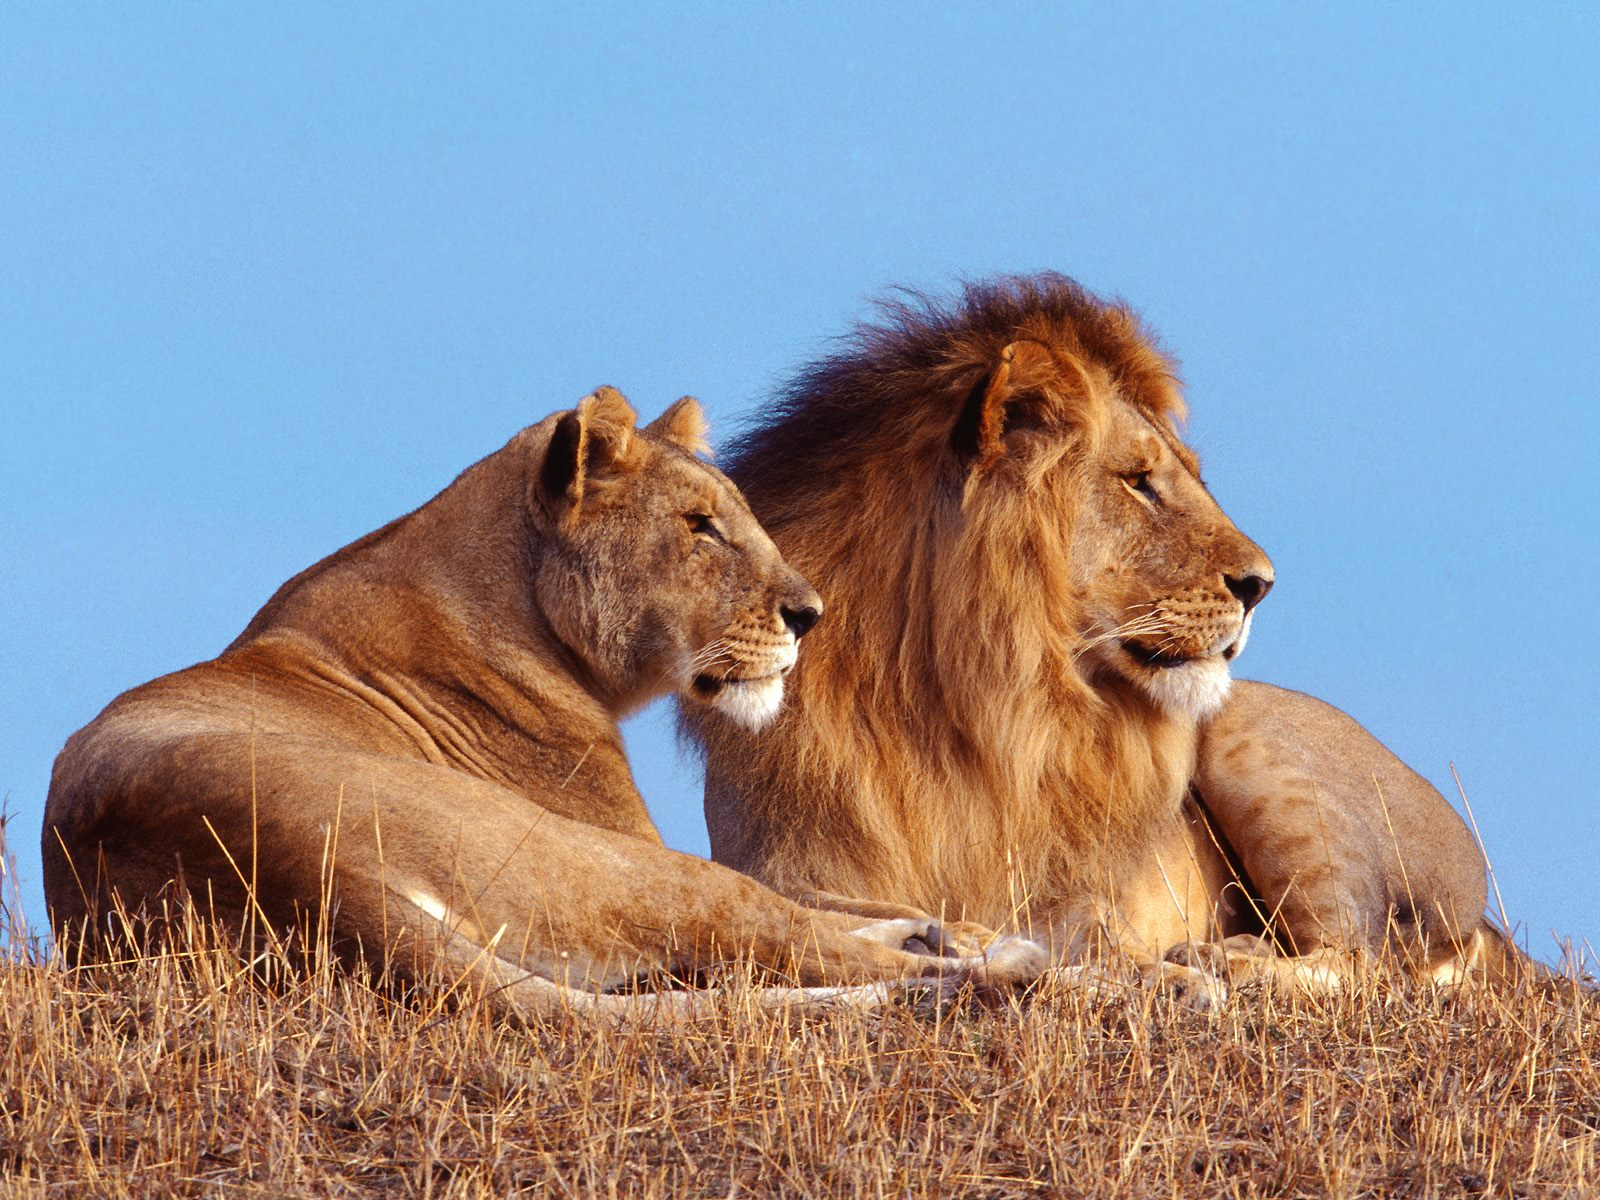 Lion family hd - photo#14